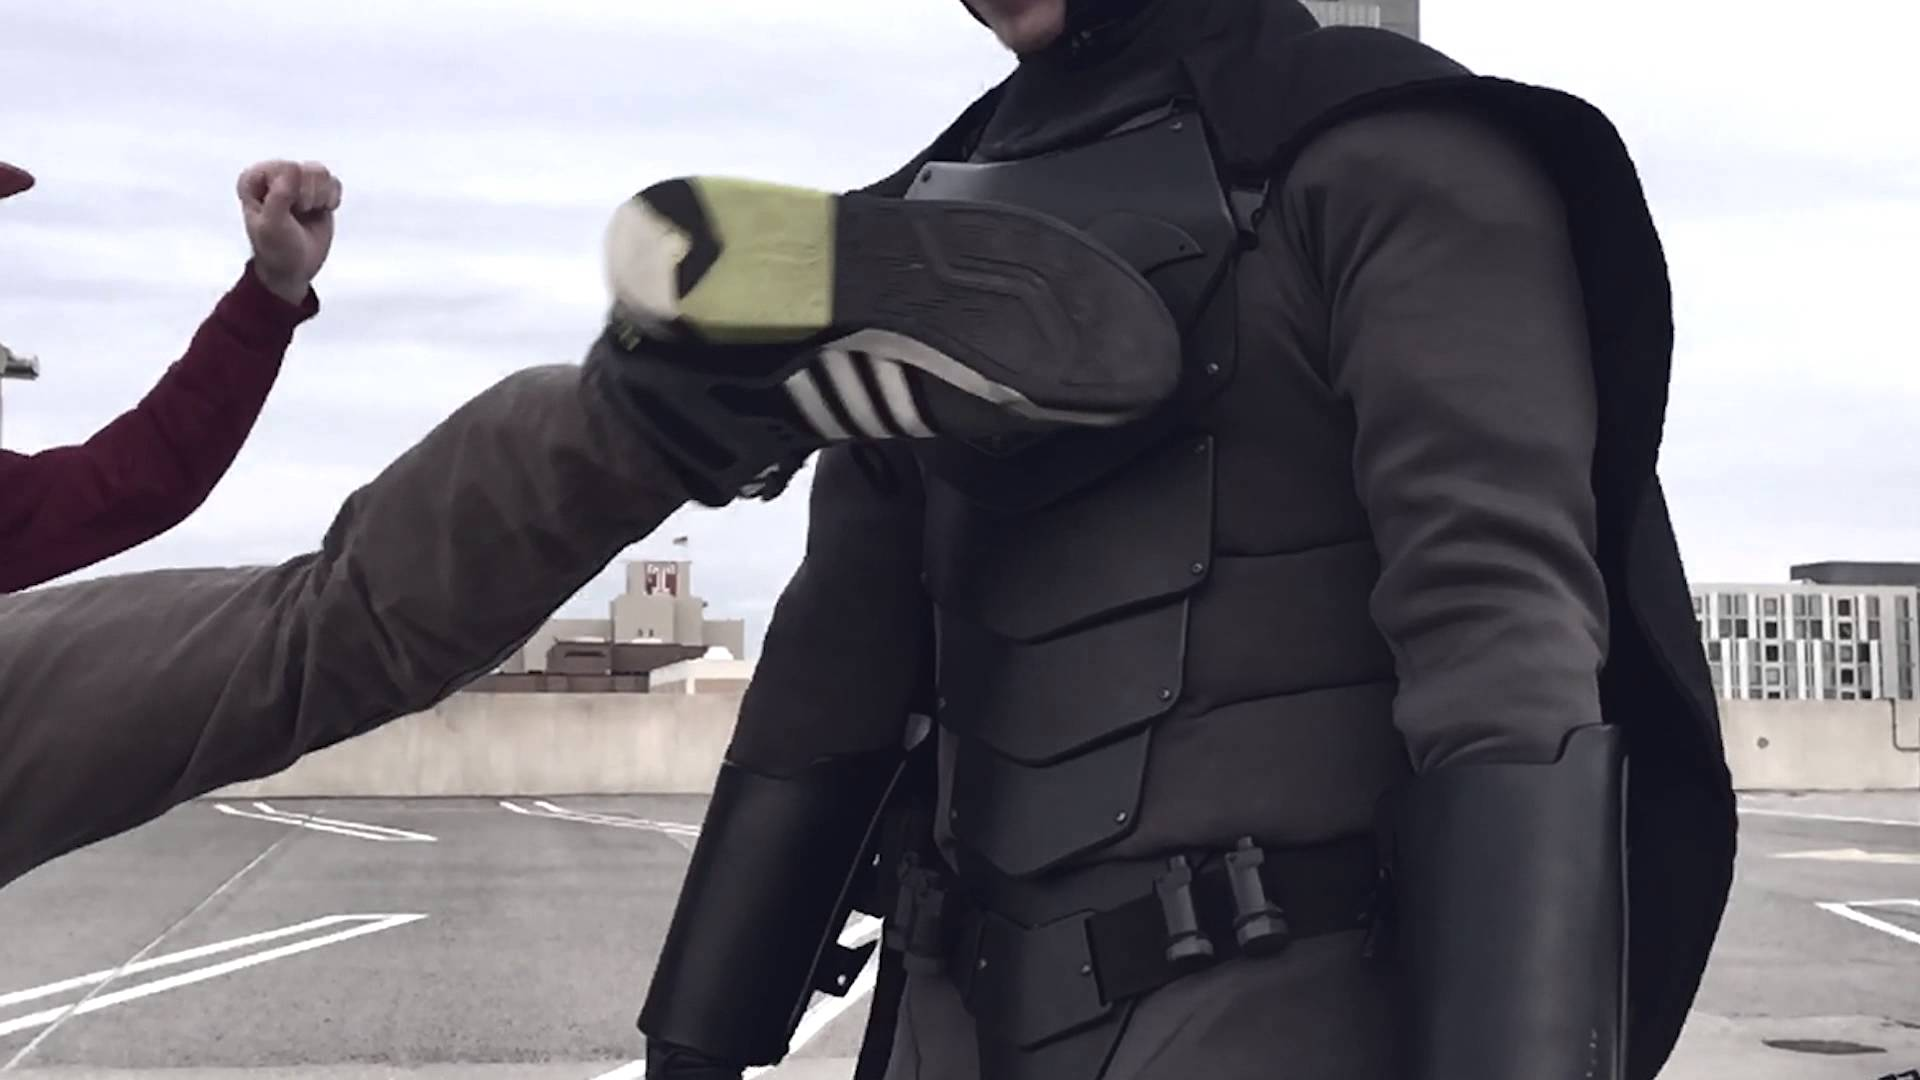 Real Life Batman Suit is Strong Enough to Stop Stabbings